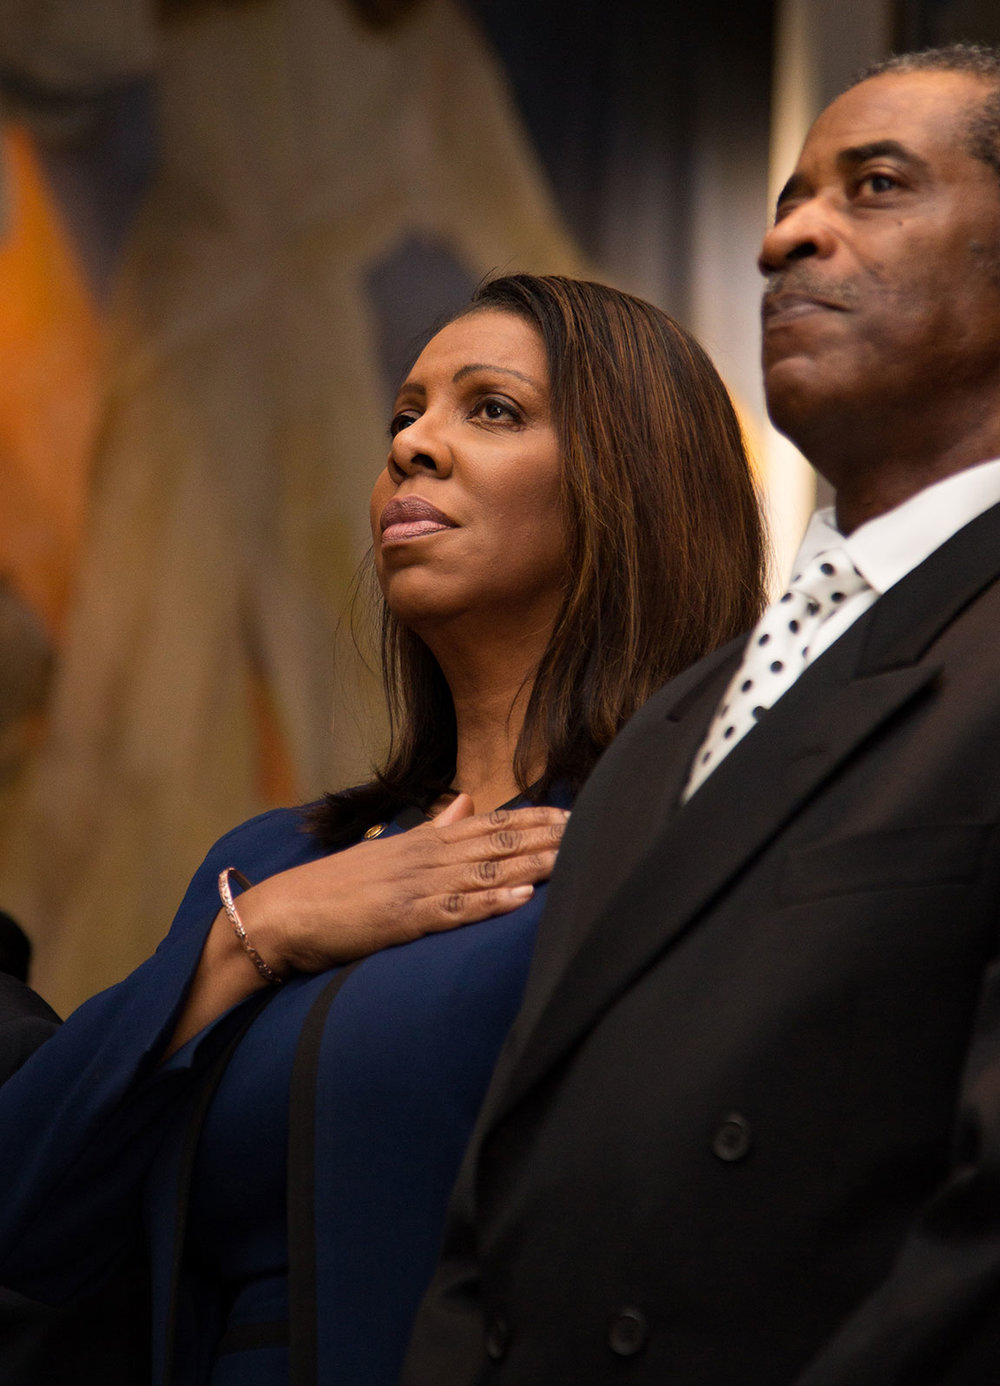 New York Attorney General Letitia James places her hand on her heart during the presentation of colors ceremony.